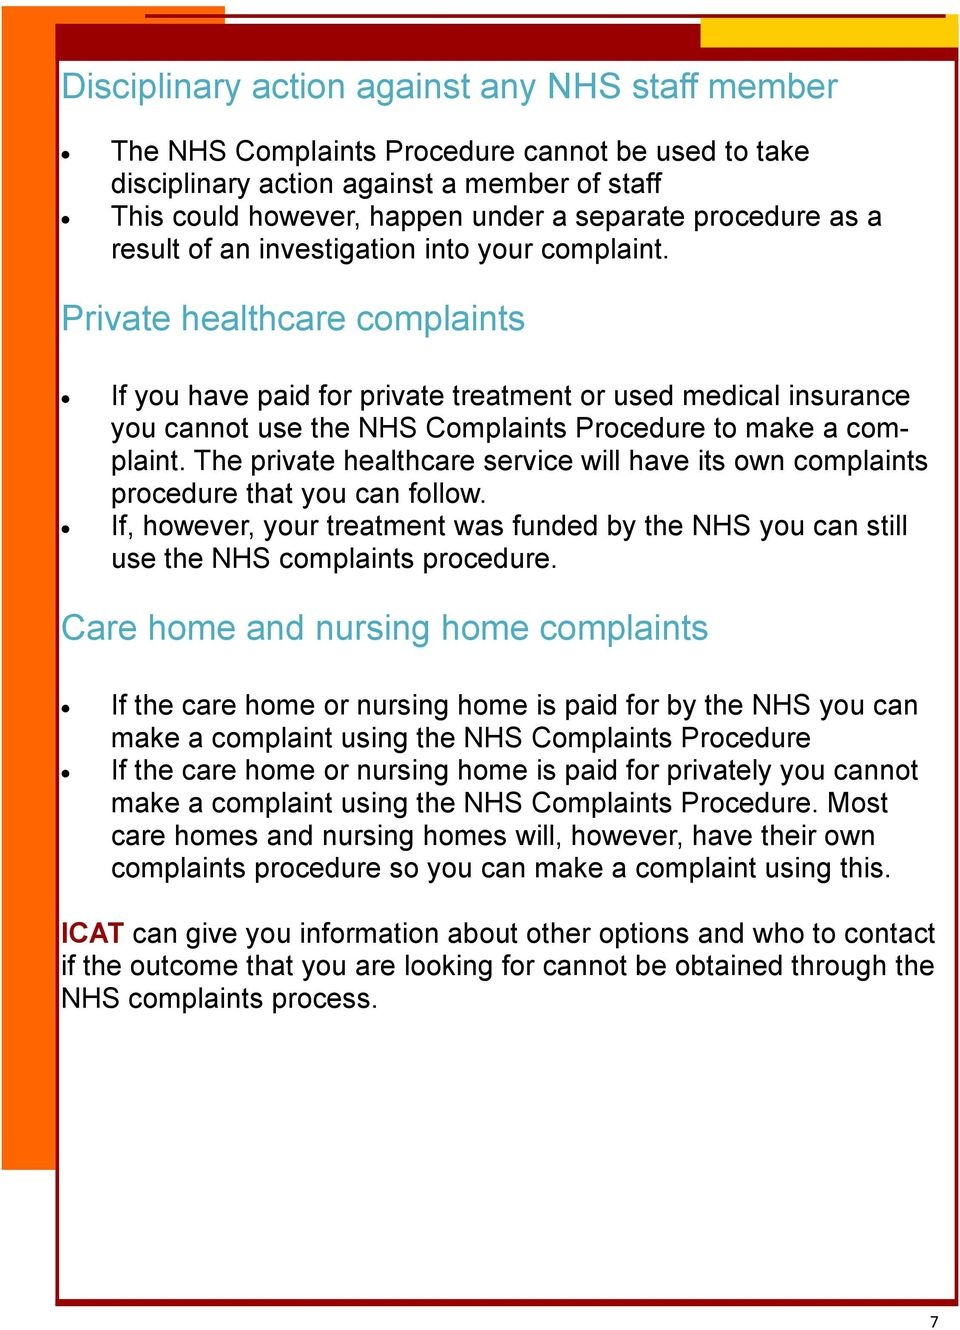 Private healthcare complaints If you have paid for private treatment or used medical insurance you cannot use the NHS Complaints Procedure to make a complaint.